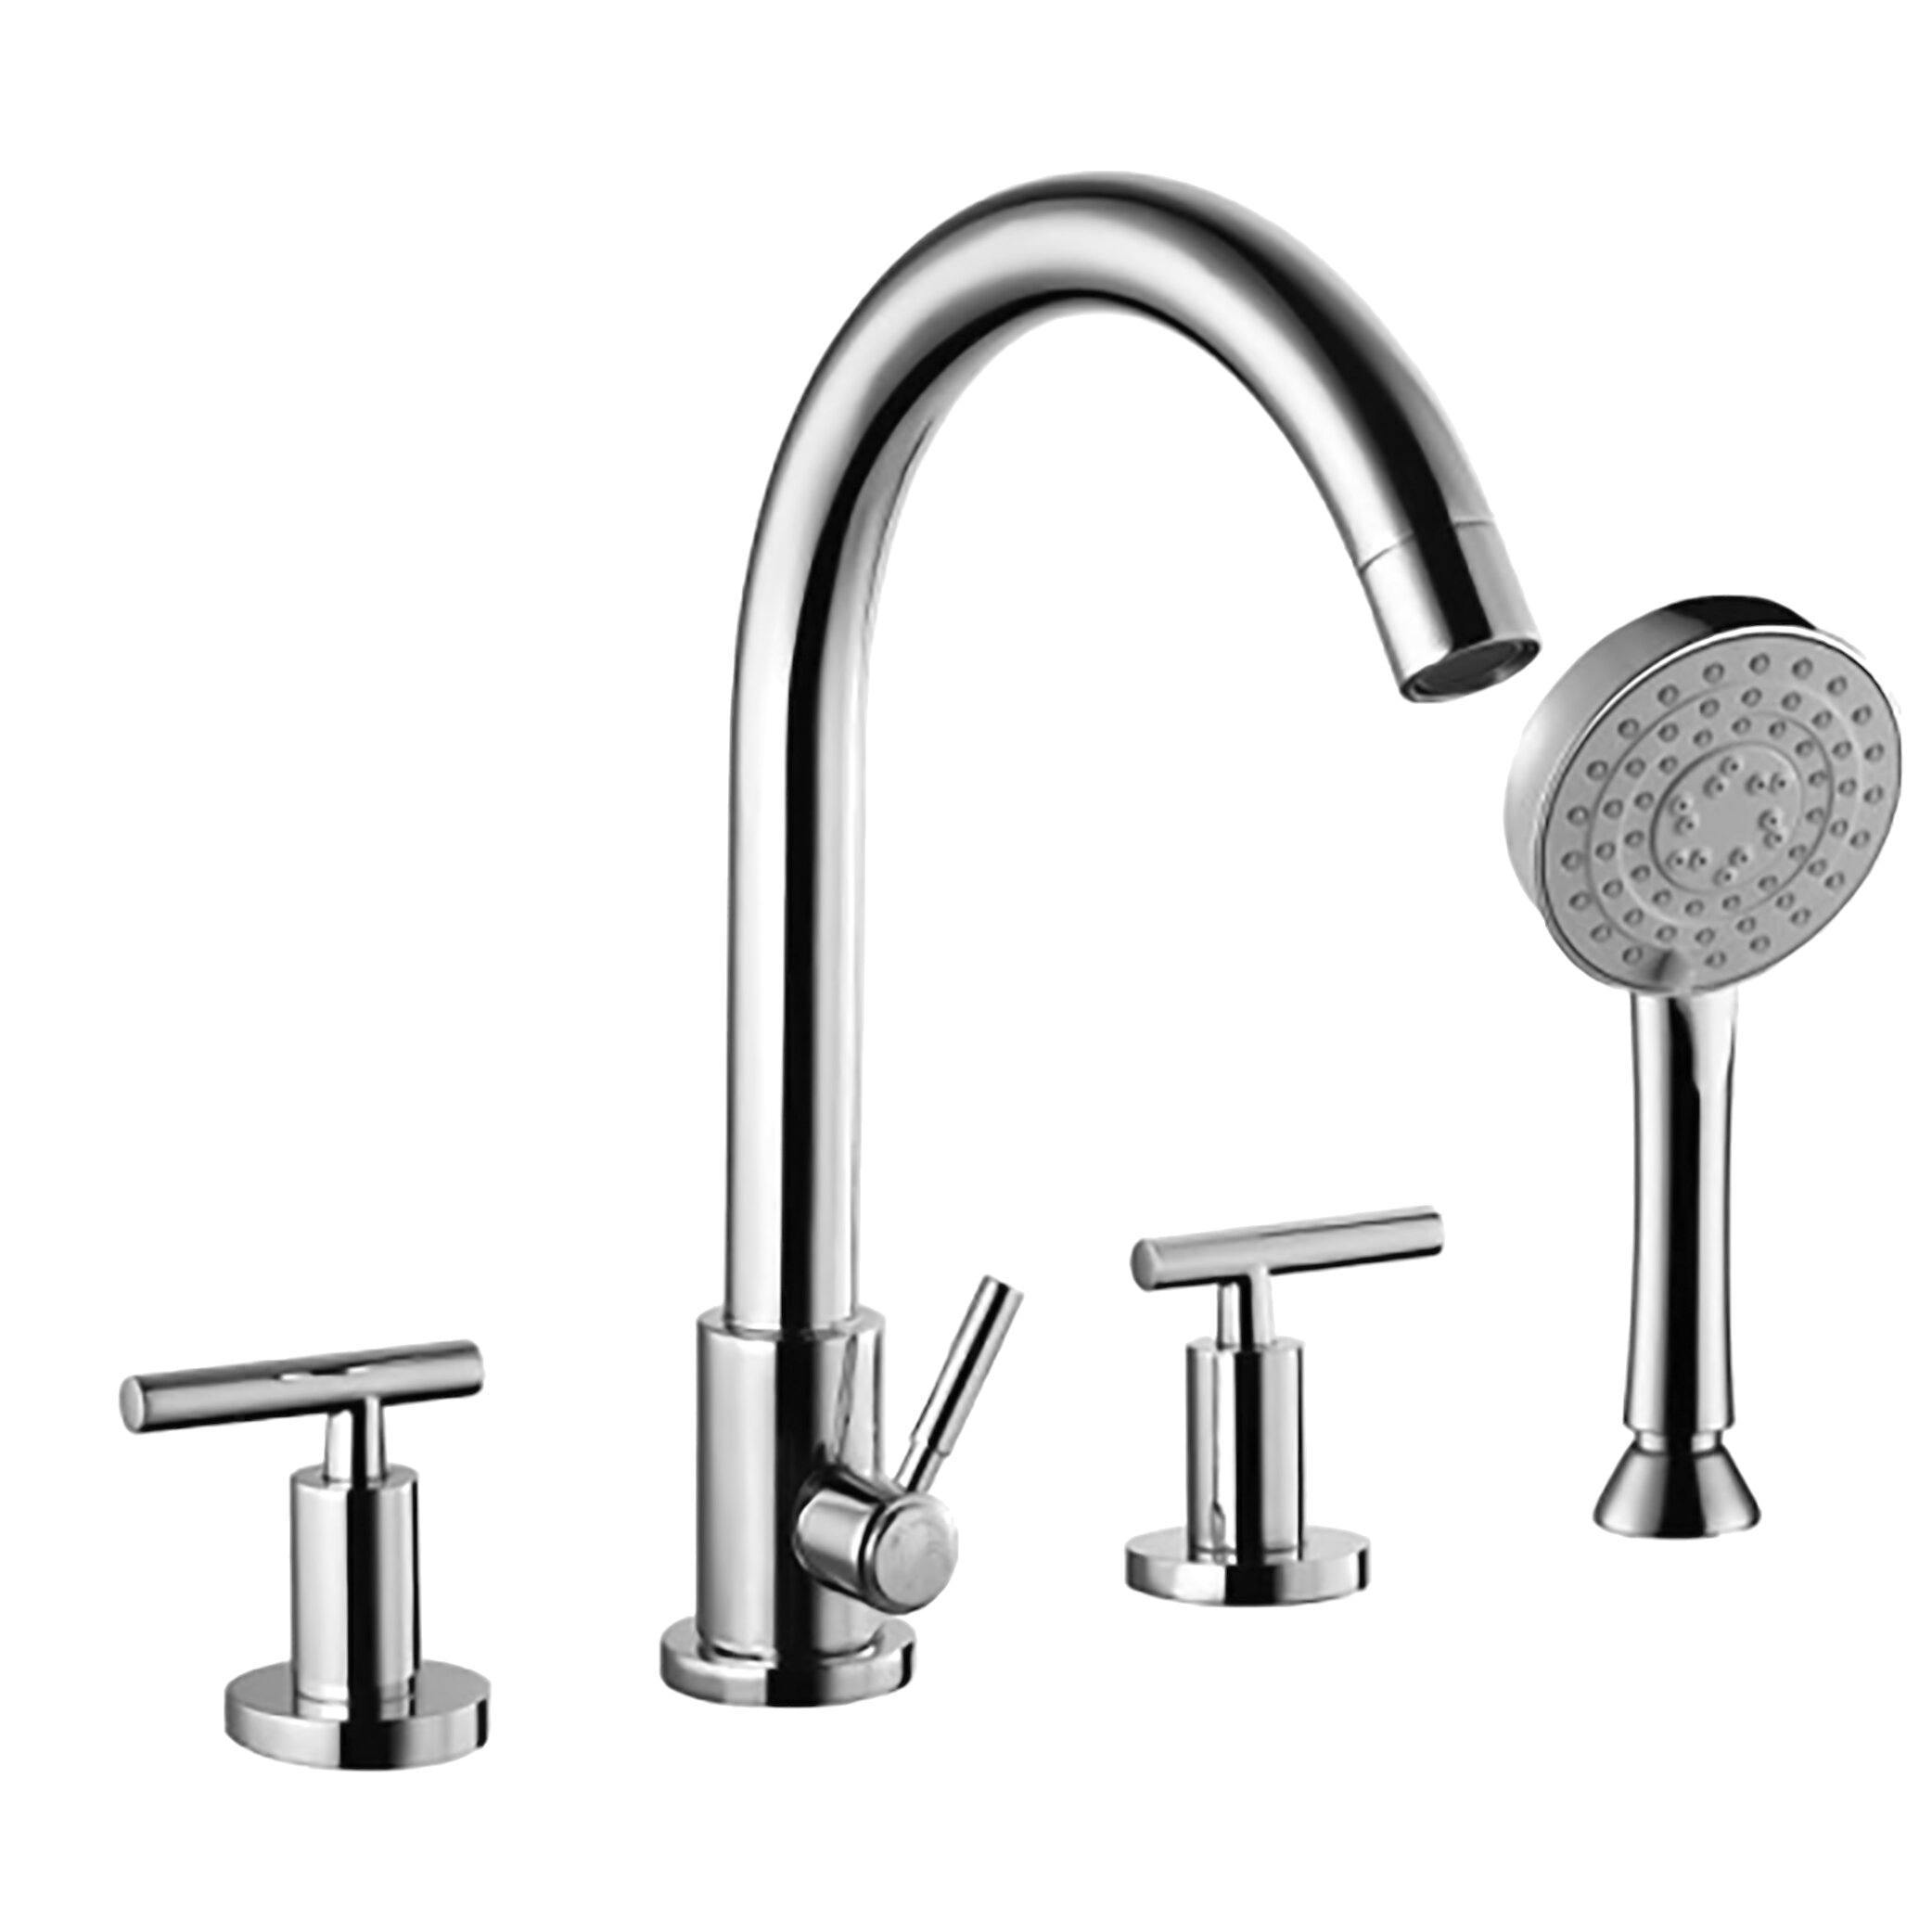 Affordable Luxury Arched Tubular Spout Double Handle Deck Mounted Roman Tub Faucet With Handheld Shower